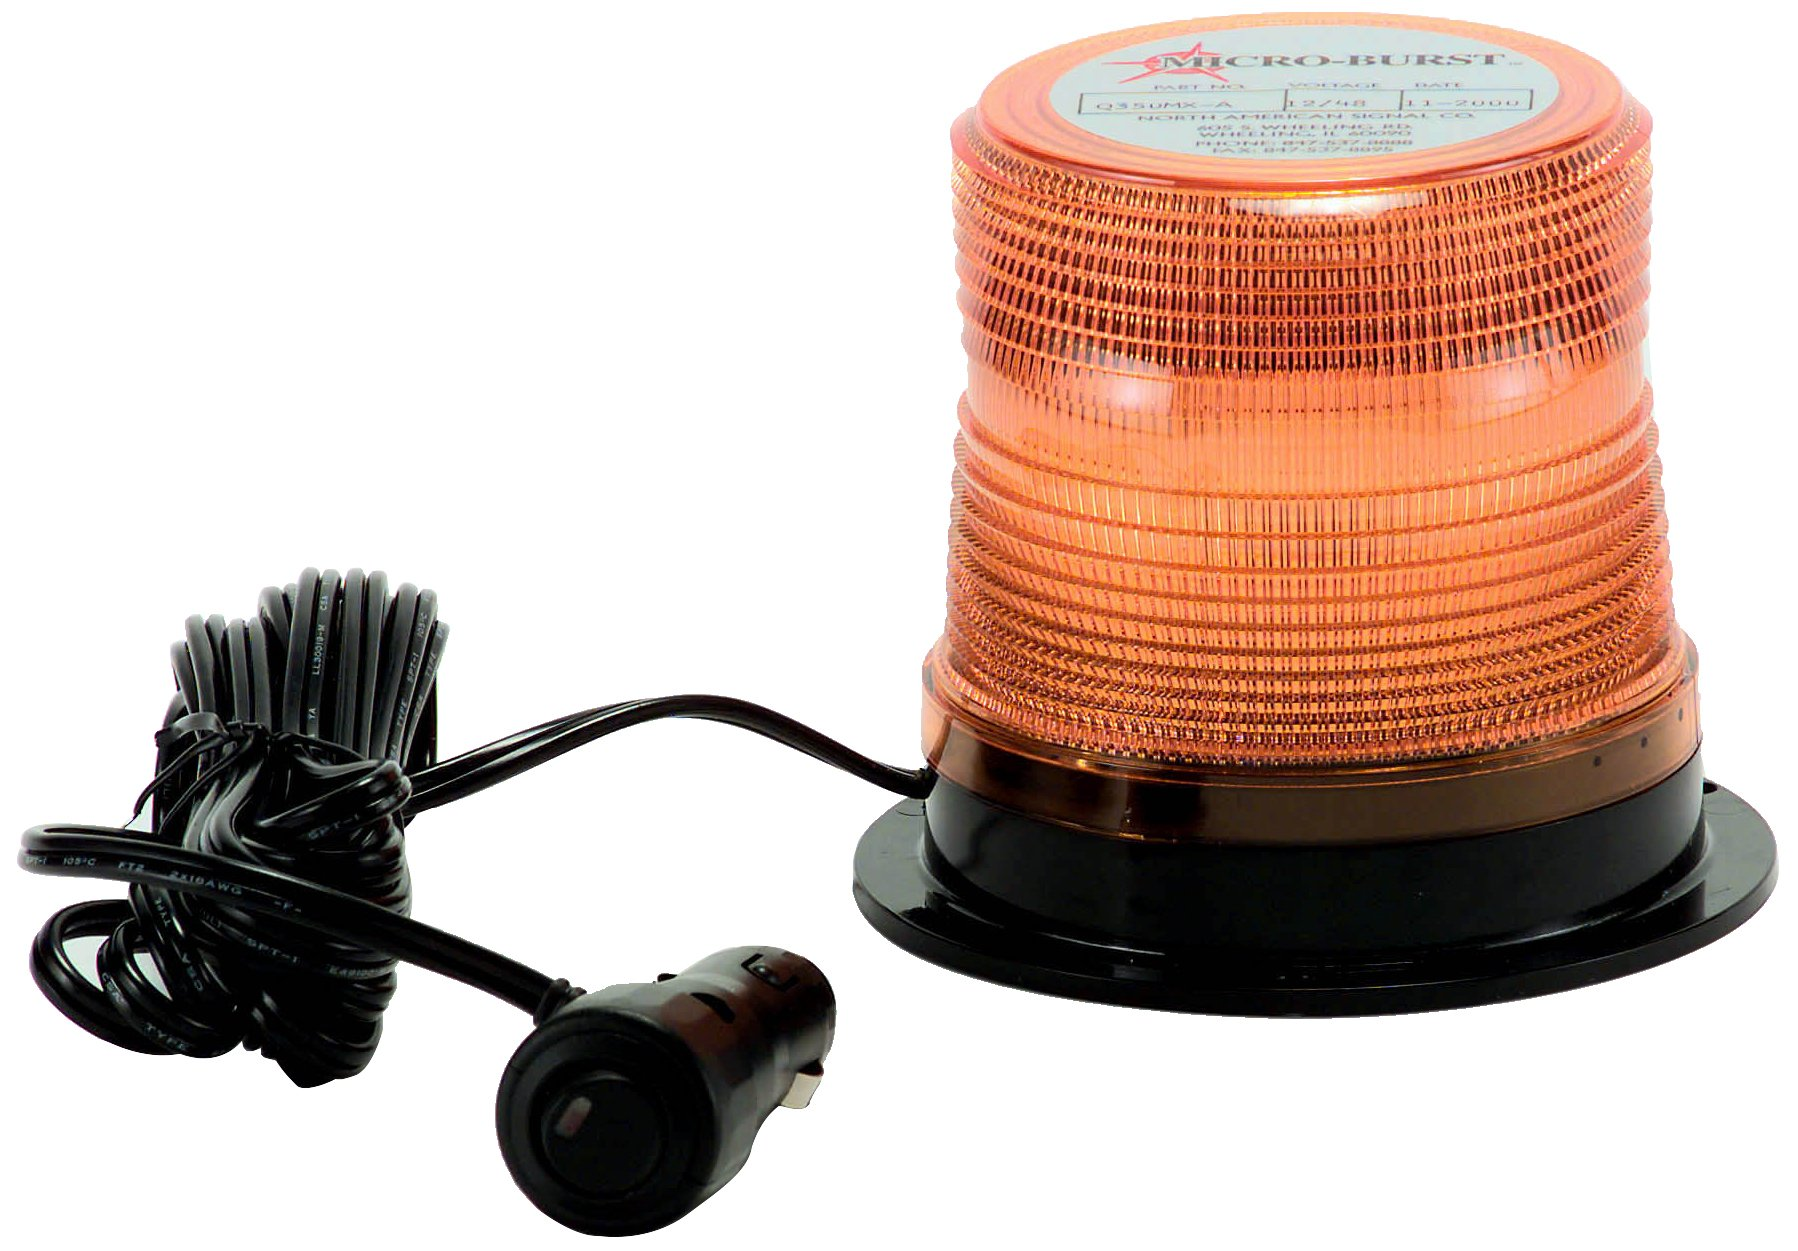 North American Signal LEDQ375MX-A Class 1 LED Beacon with Magnetic Mount, 12/24V, Amber